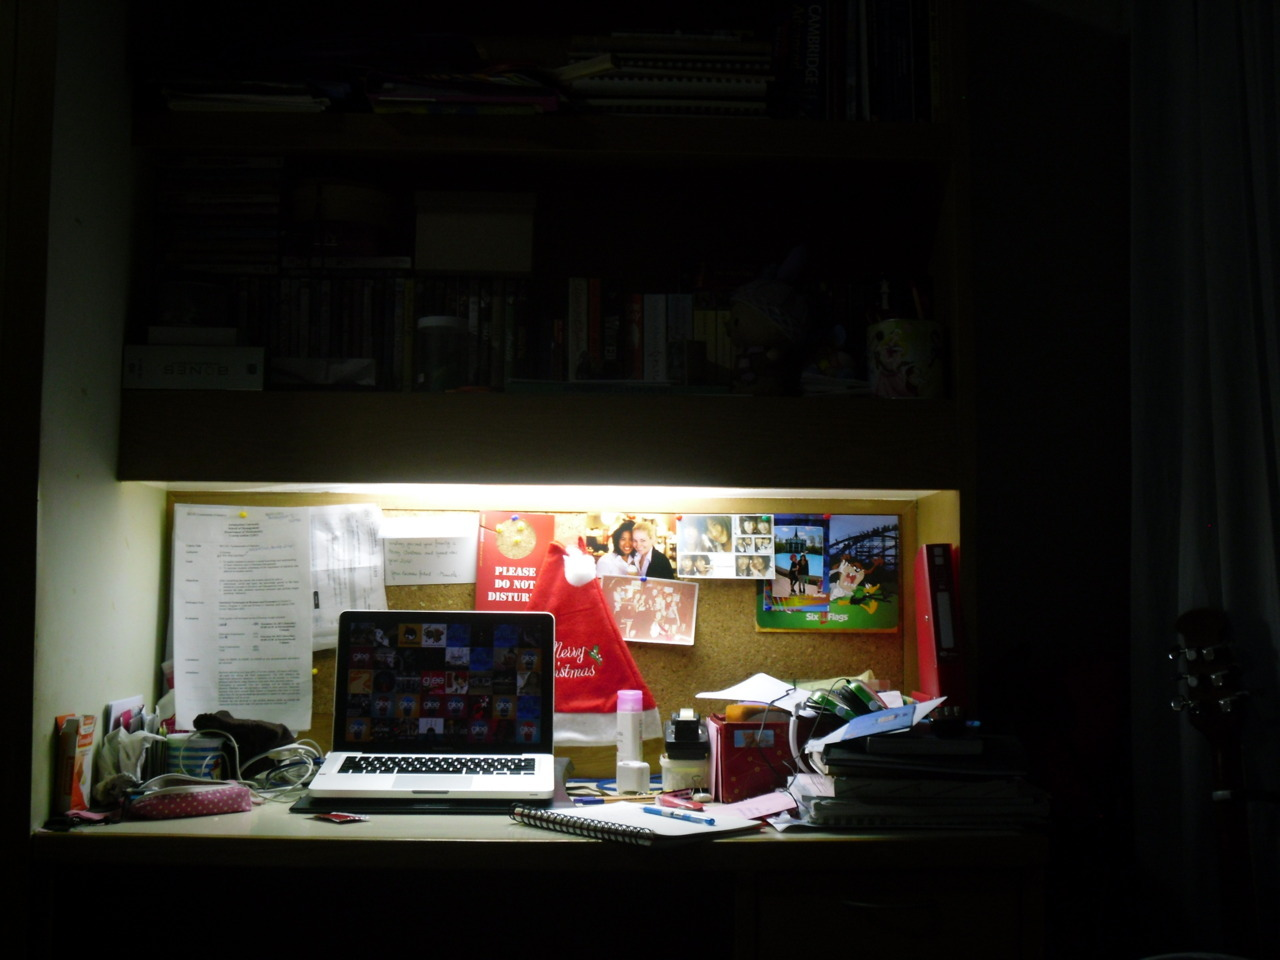 pacharapoob:  my desk couldnt be more mess lol.